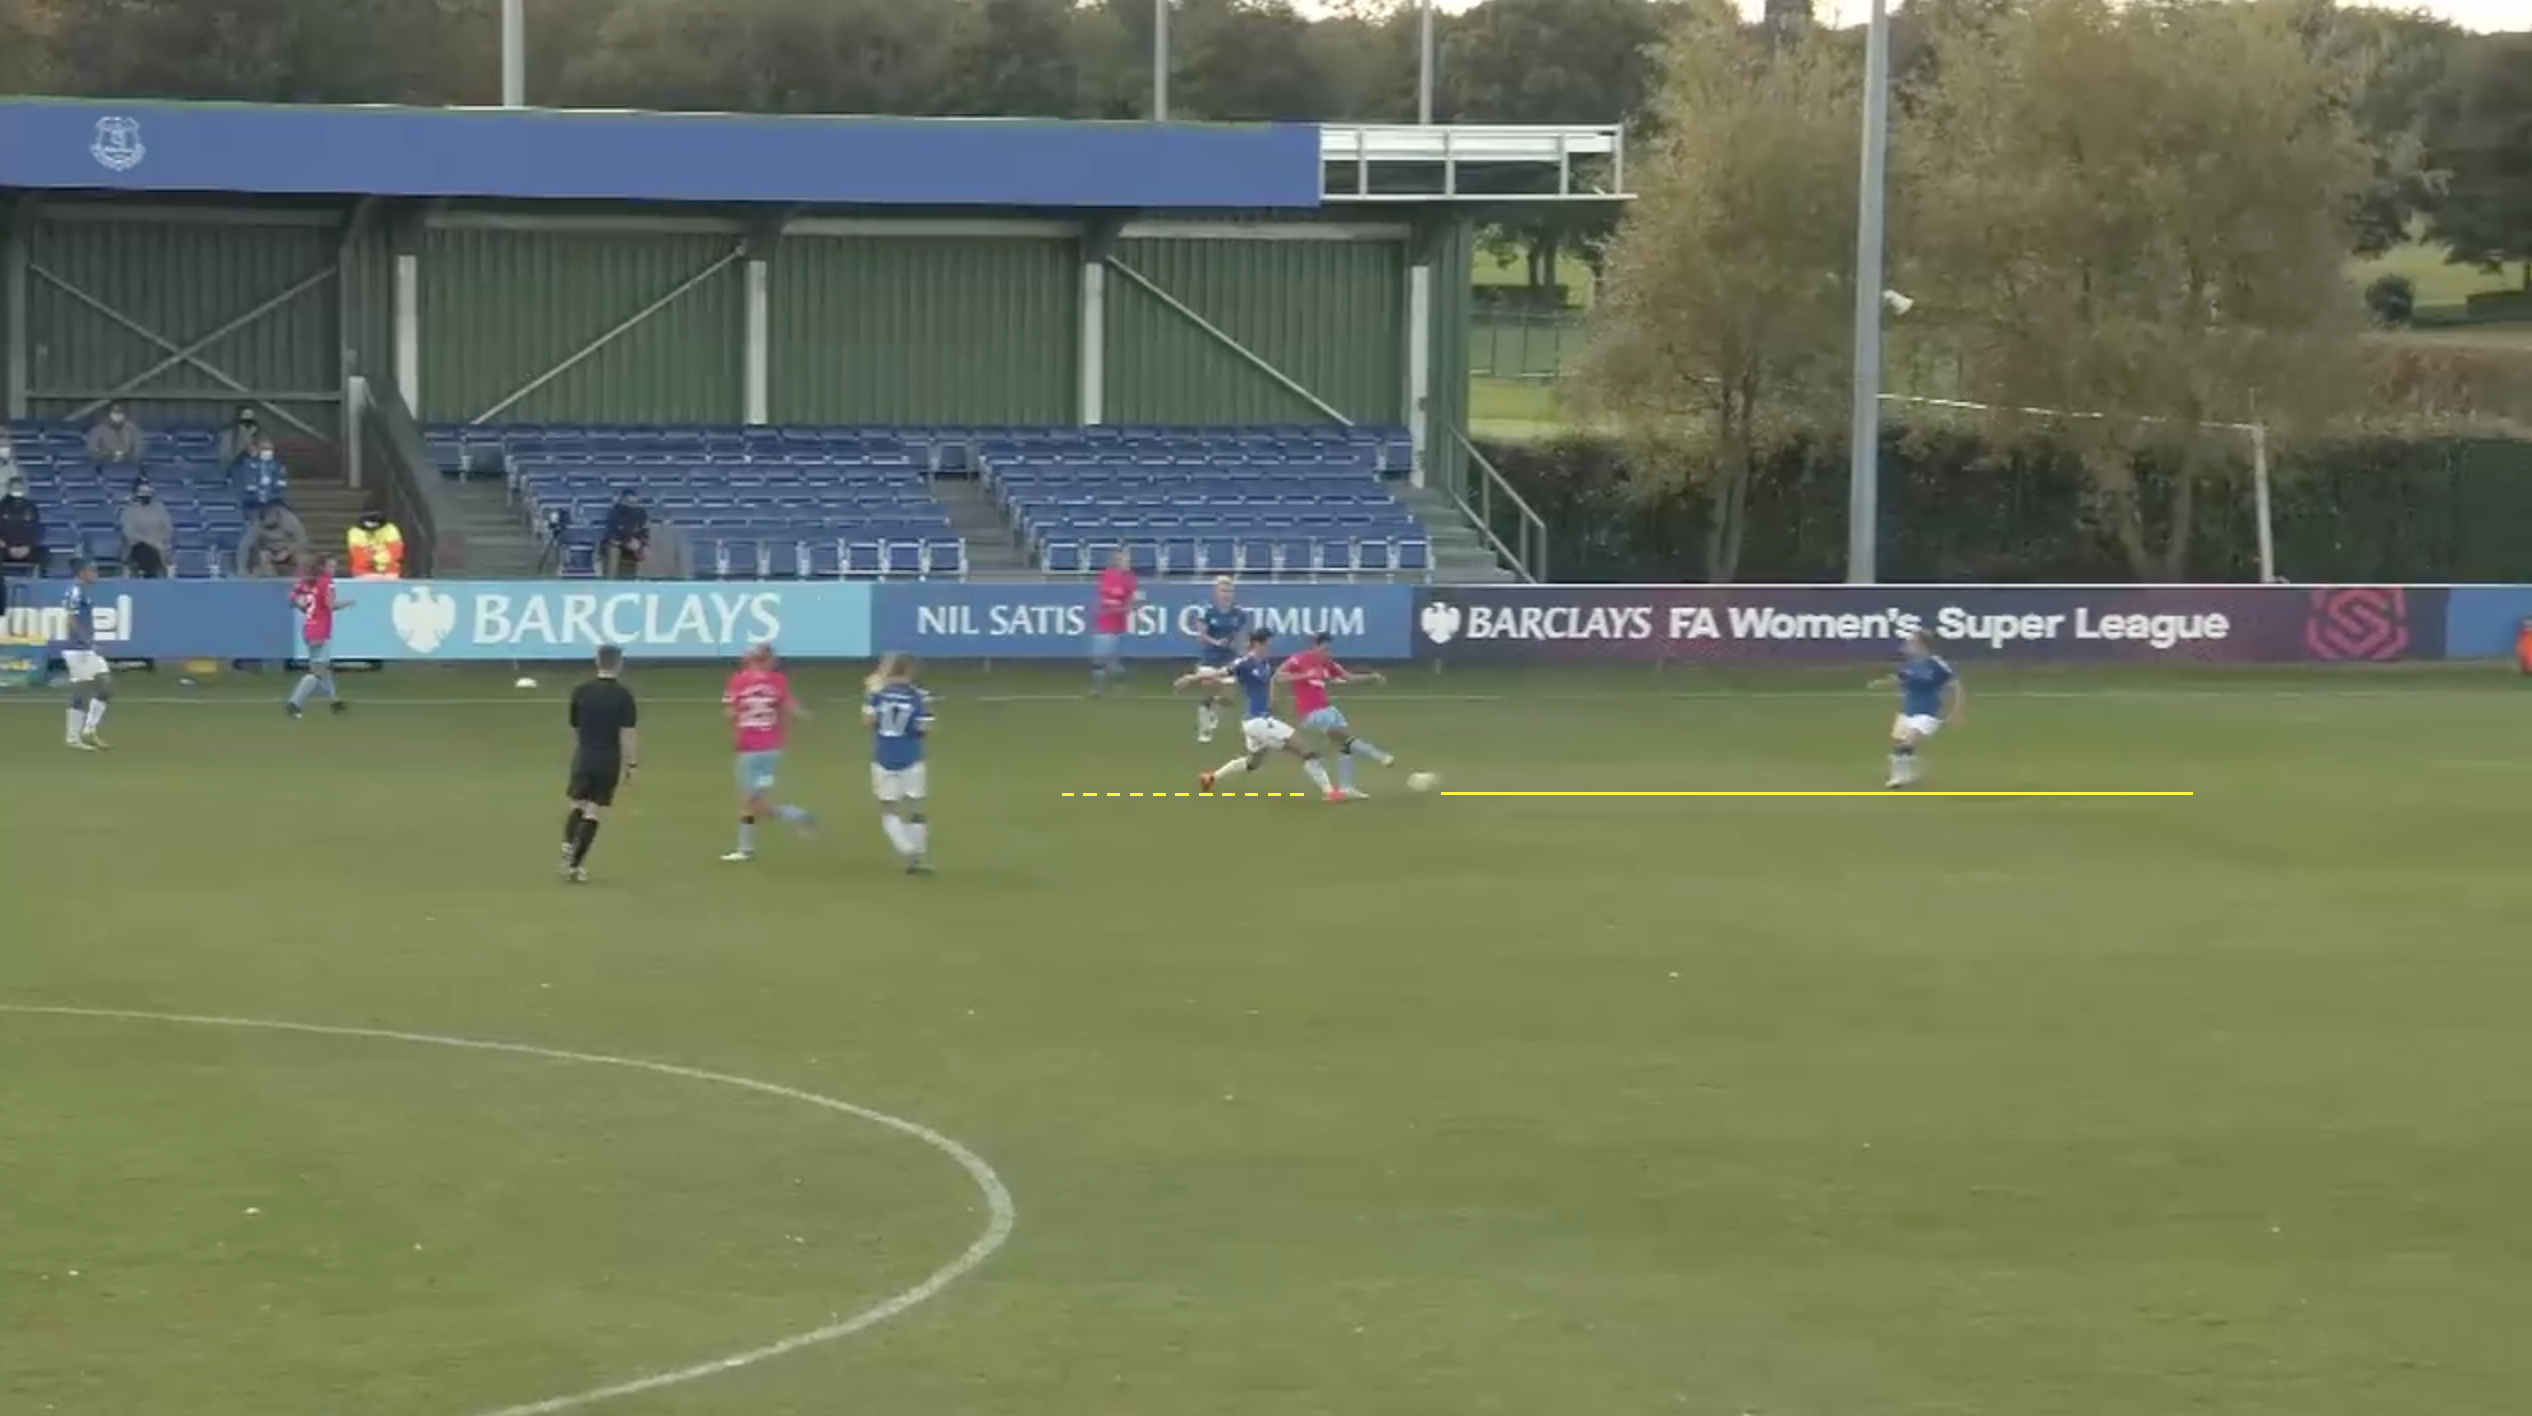 FAWSL 2020: Everton v West Ham United - tactical analysis tactics